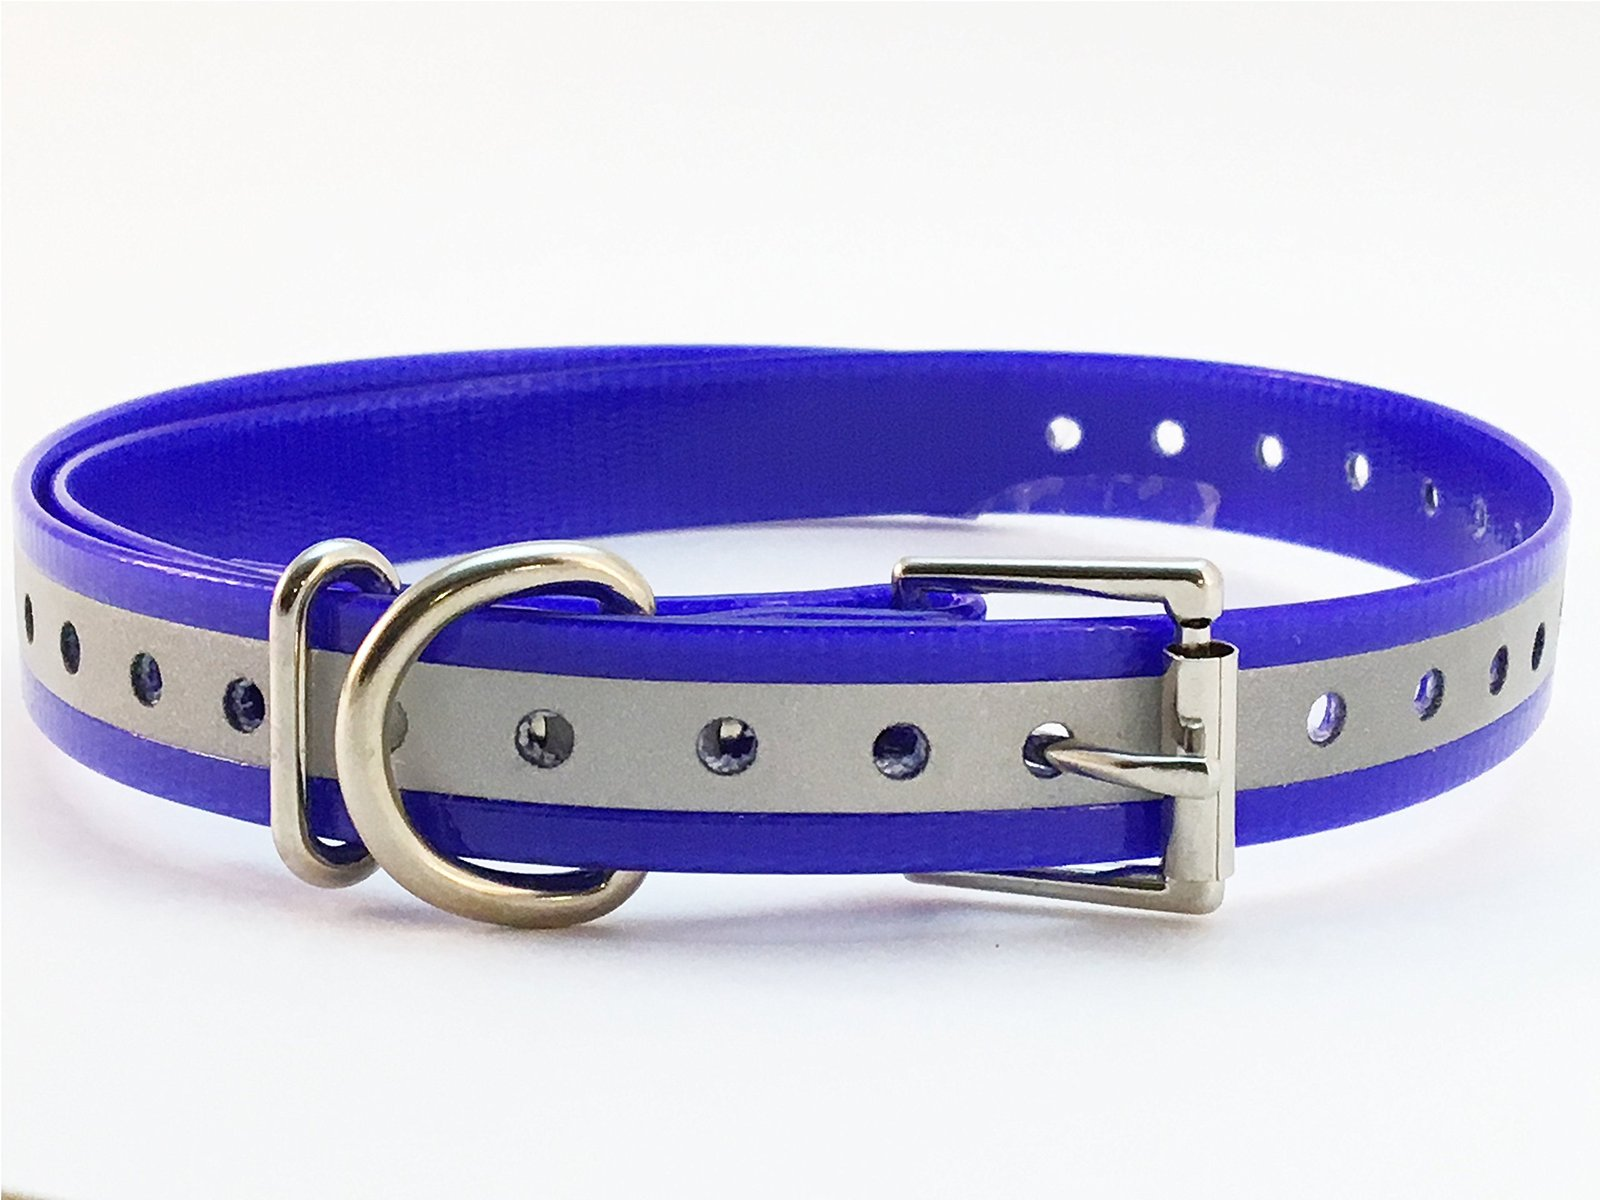 "Sparky PetCo 3/4"" Square Buckle Hi Flex Reflective Strap - Dark Blue"